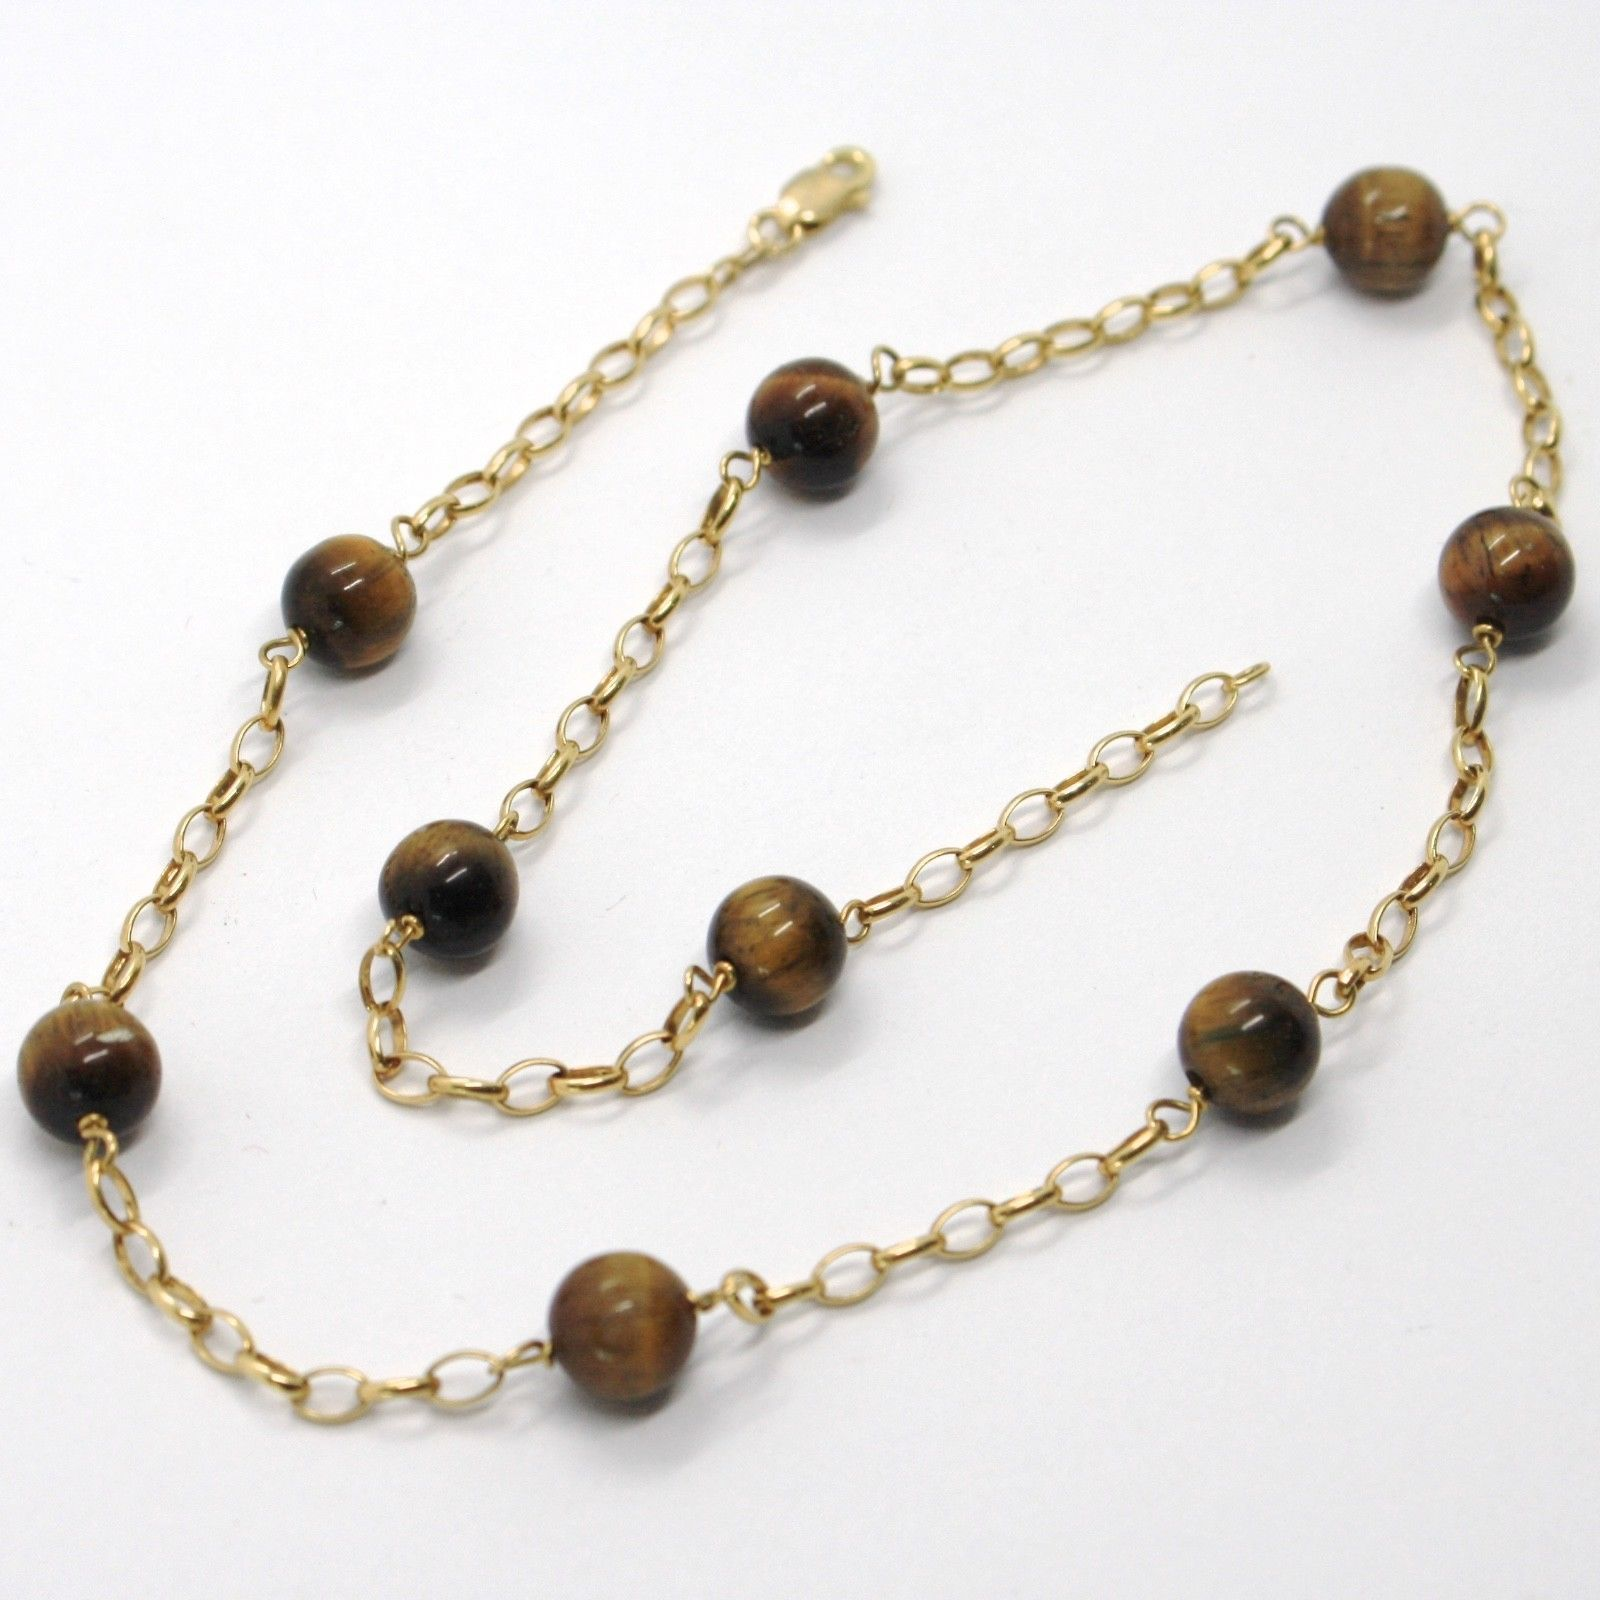 18K YELLOW GOLD NECKLACE OVAL ROLO CHAIN ALTERNATE WITH TIGER'S EYE BALLS 8 MM